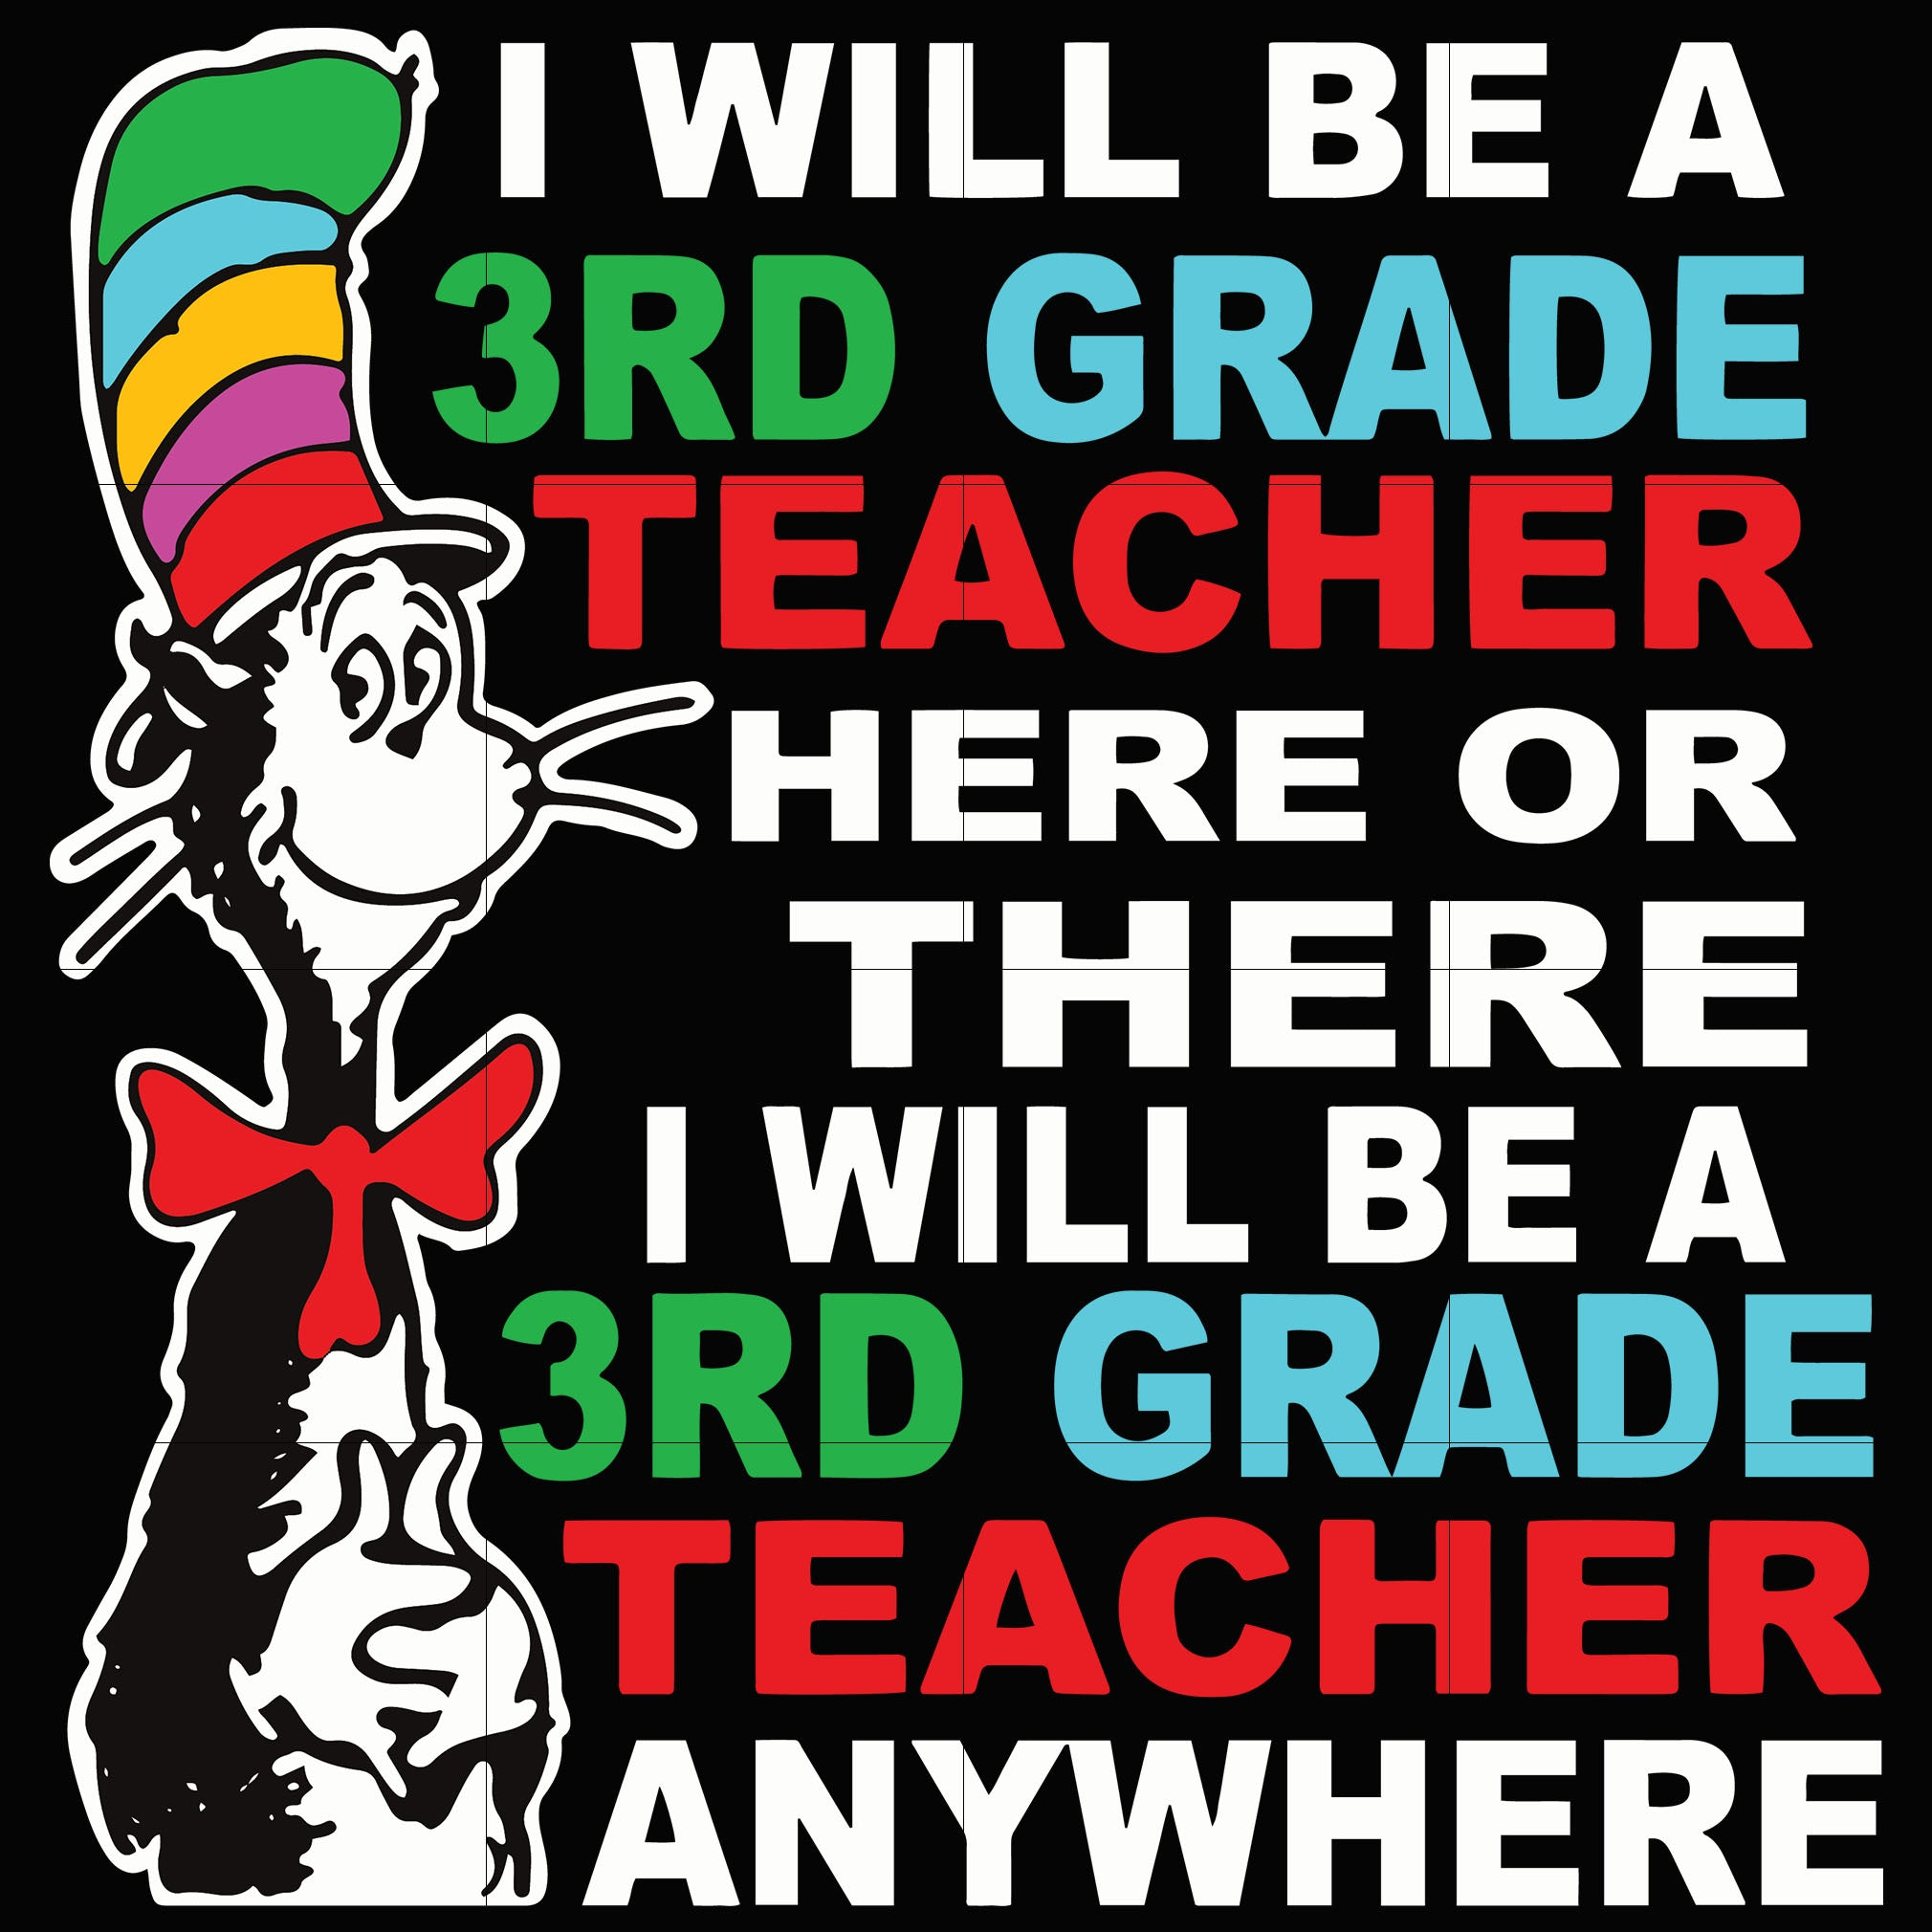 I will be a 3rd grade teacher here or there i will be a 3rd grade teacher any where, dr seuss svg, dr seuss quotes digital file